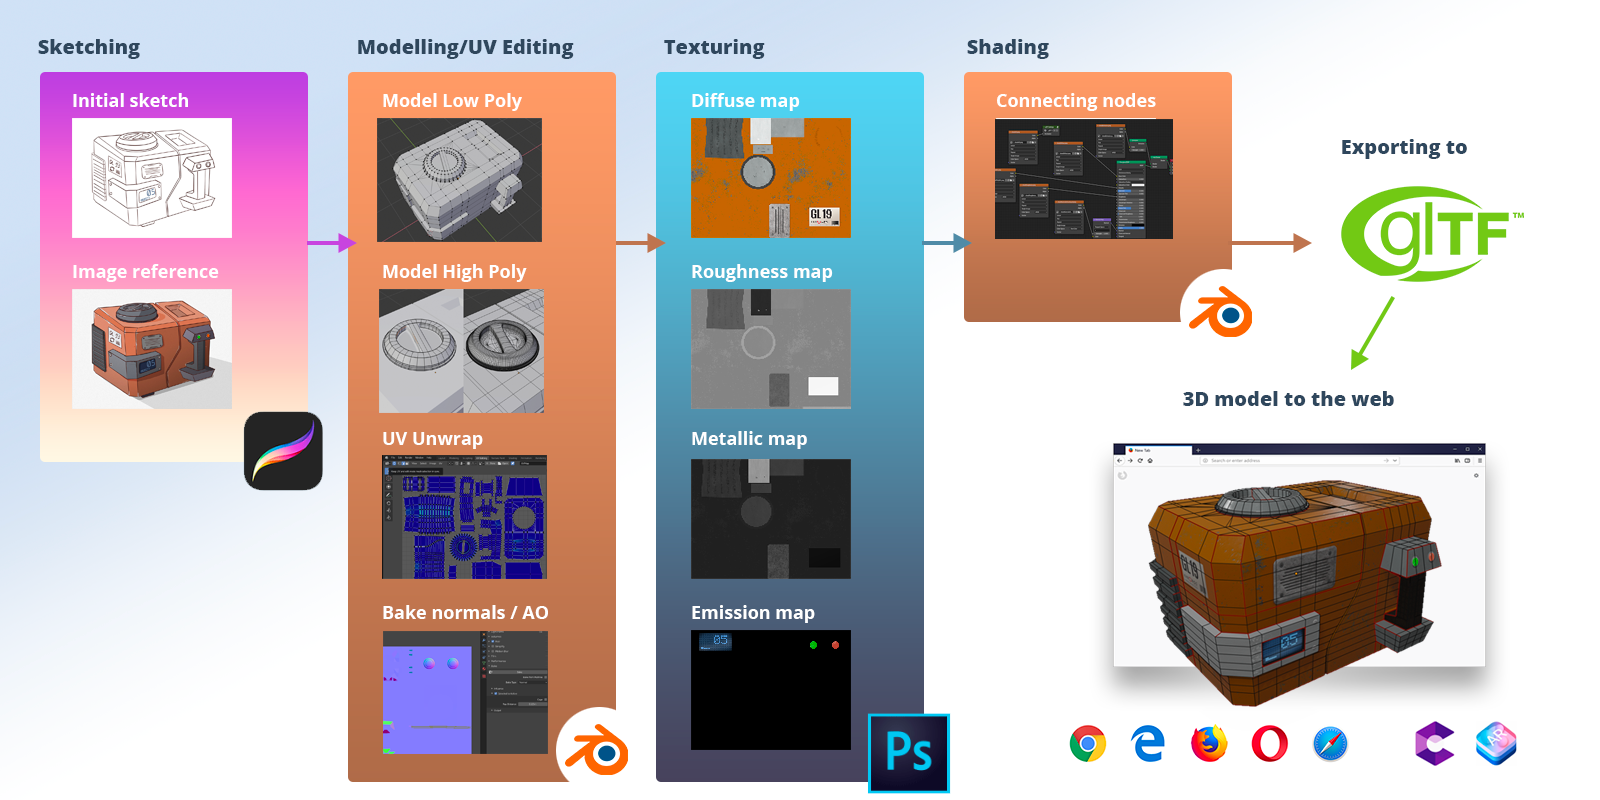 Unboring | Workflow: How to make a PBR 3D model for the web